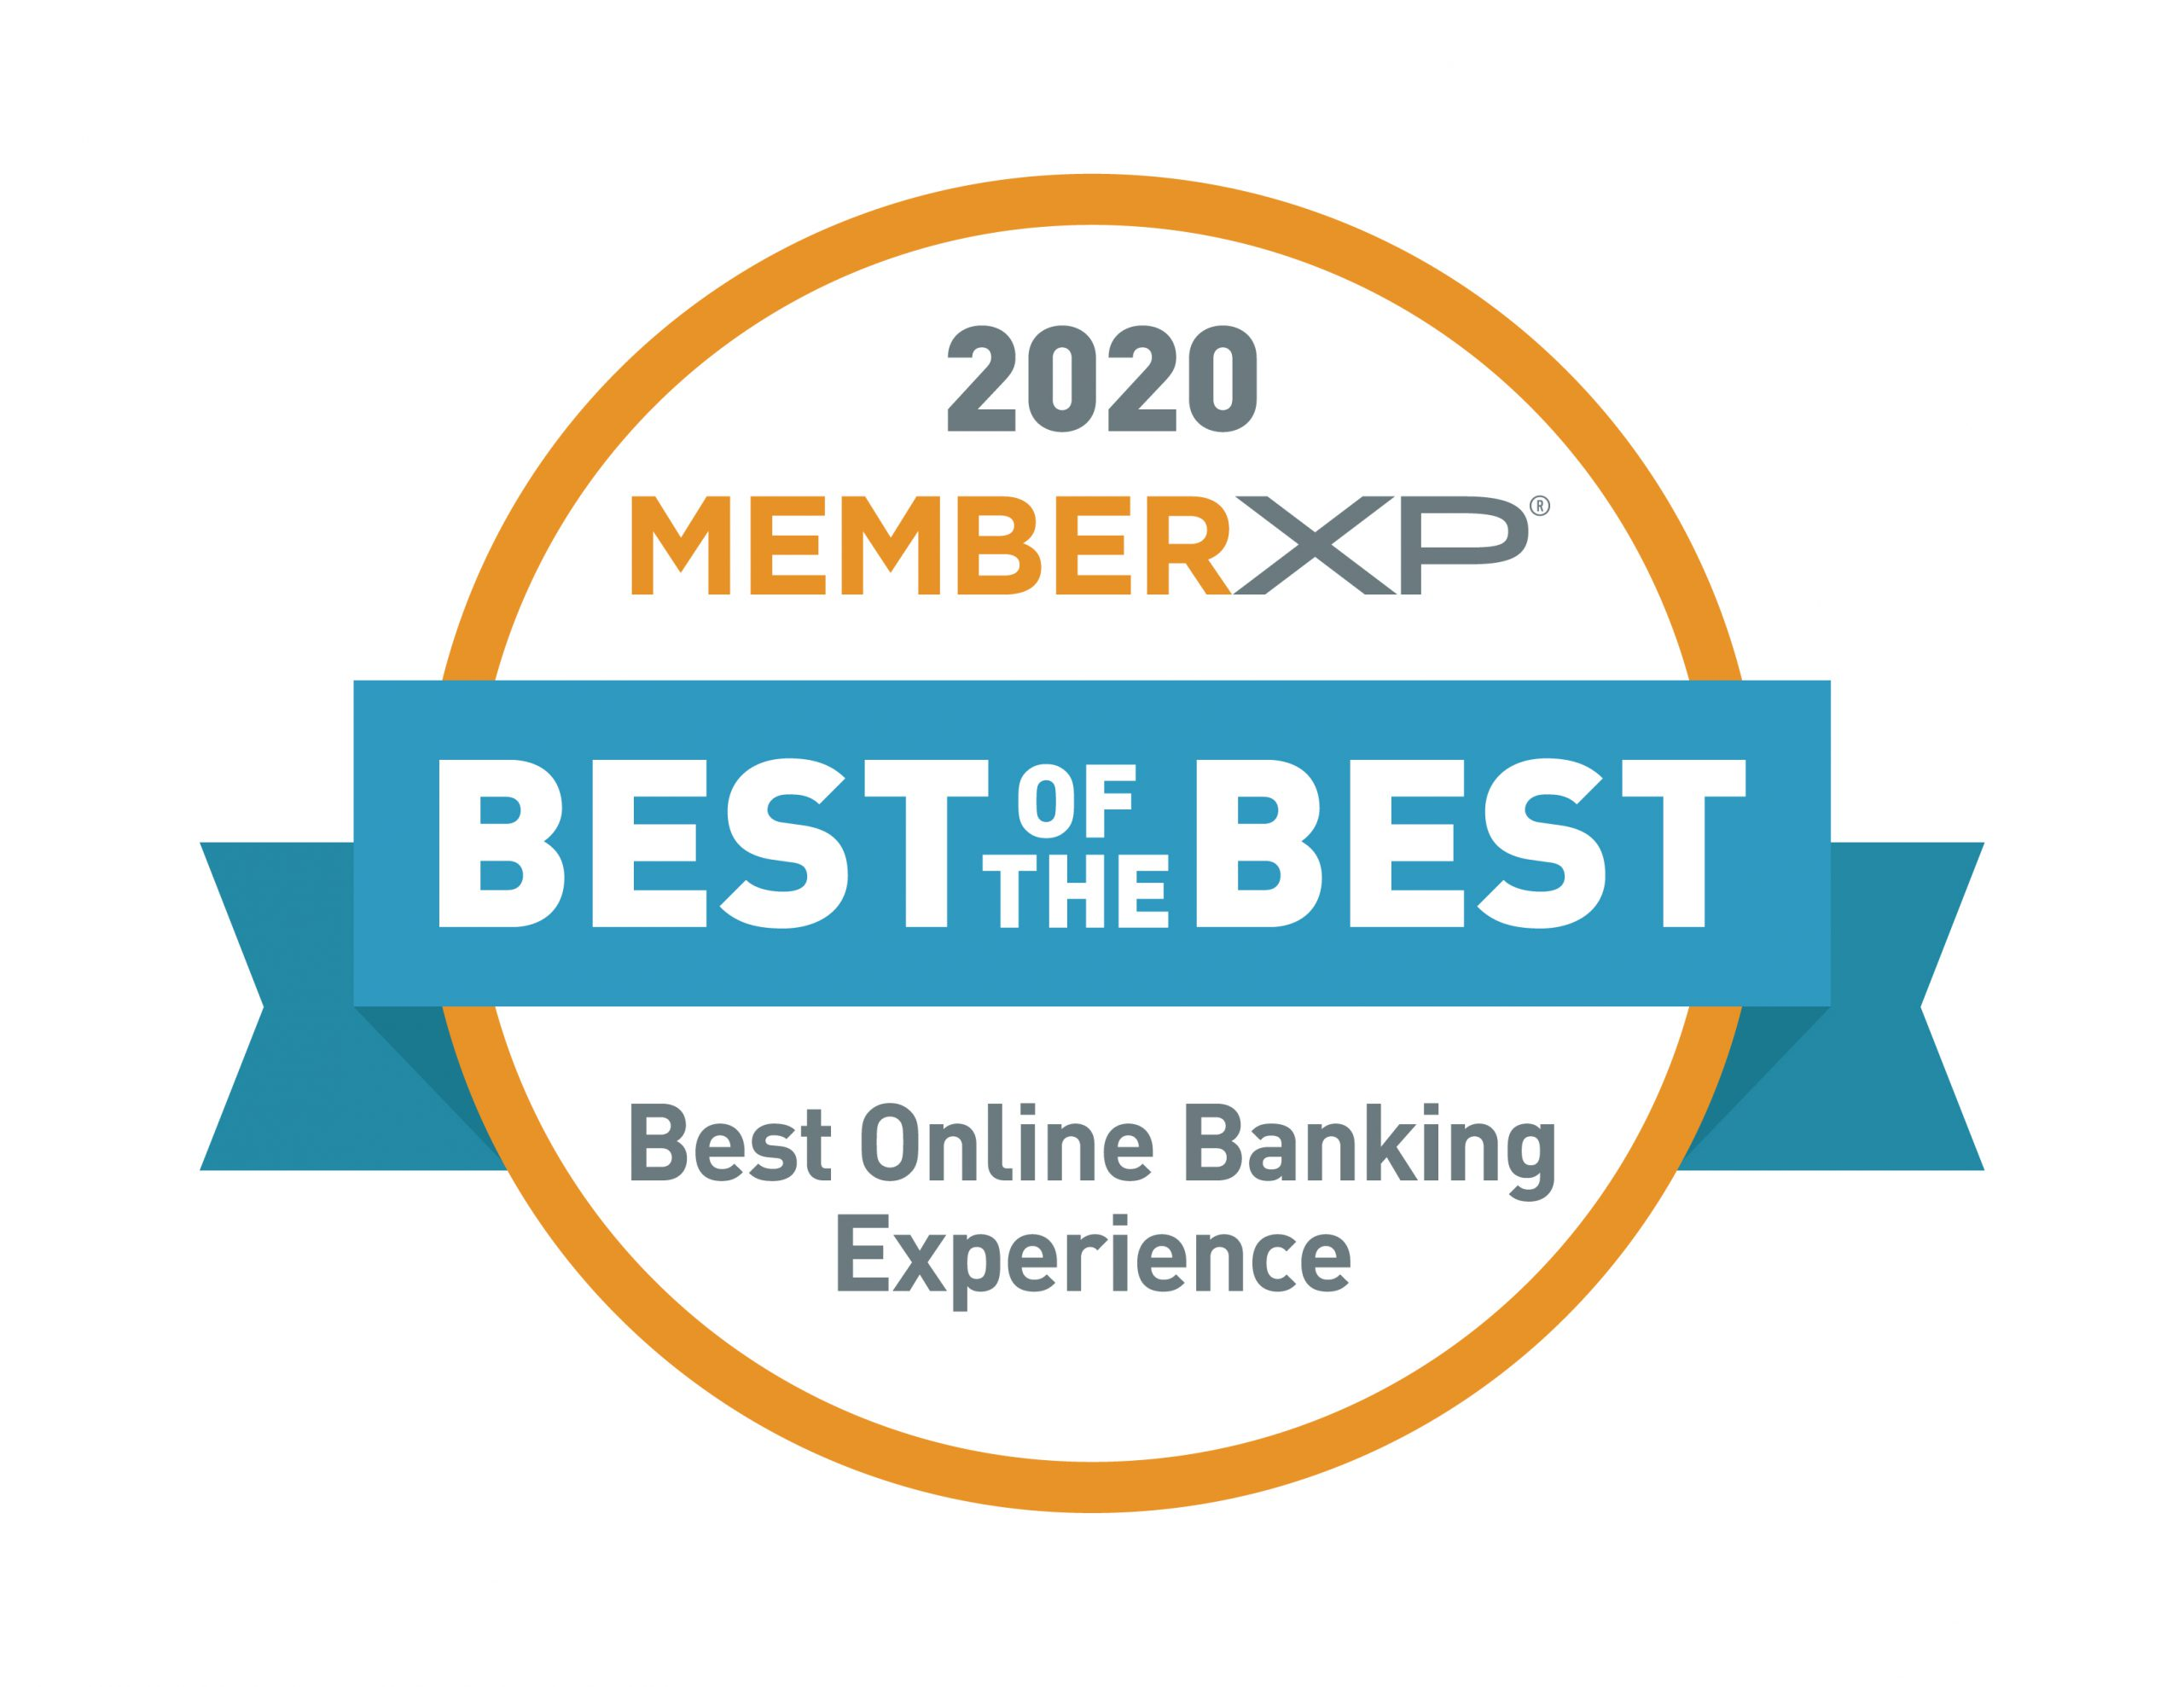 143531-Best-Online-Banking-Experience-Seal-RGB